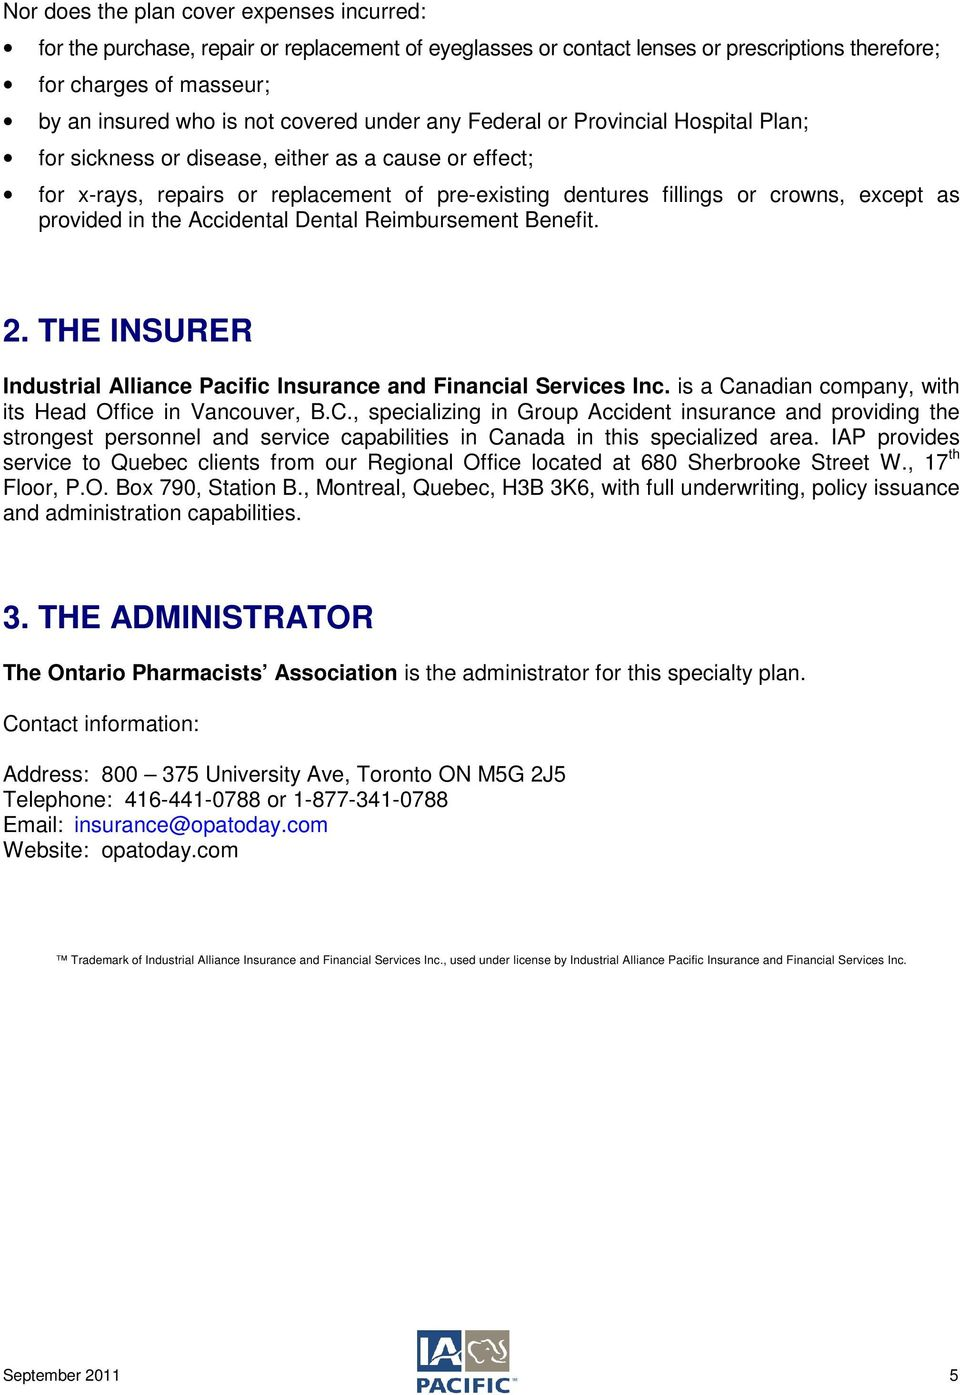 in the Accidental Dental Reimbursement Benefit. 2. THE INSURER Industrial Alliance Pacific Insurance and Financial Services Inc. is a Ca